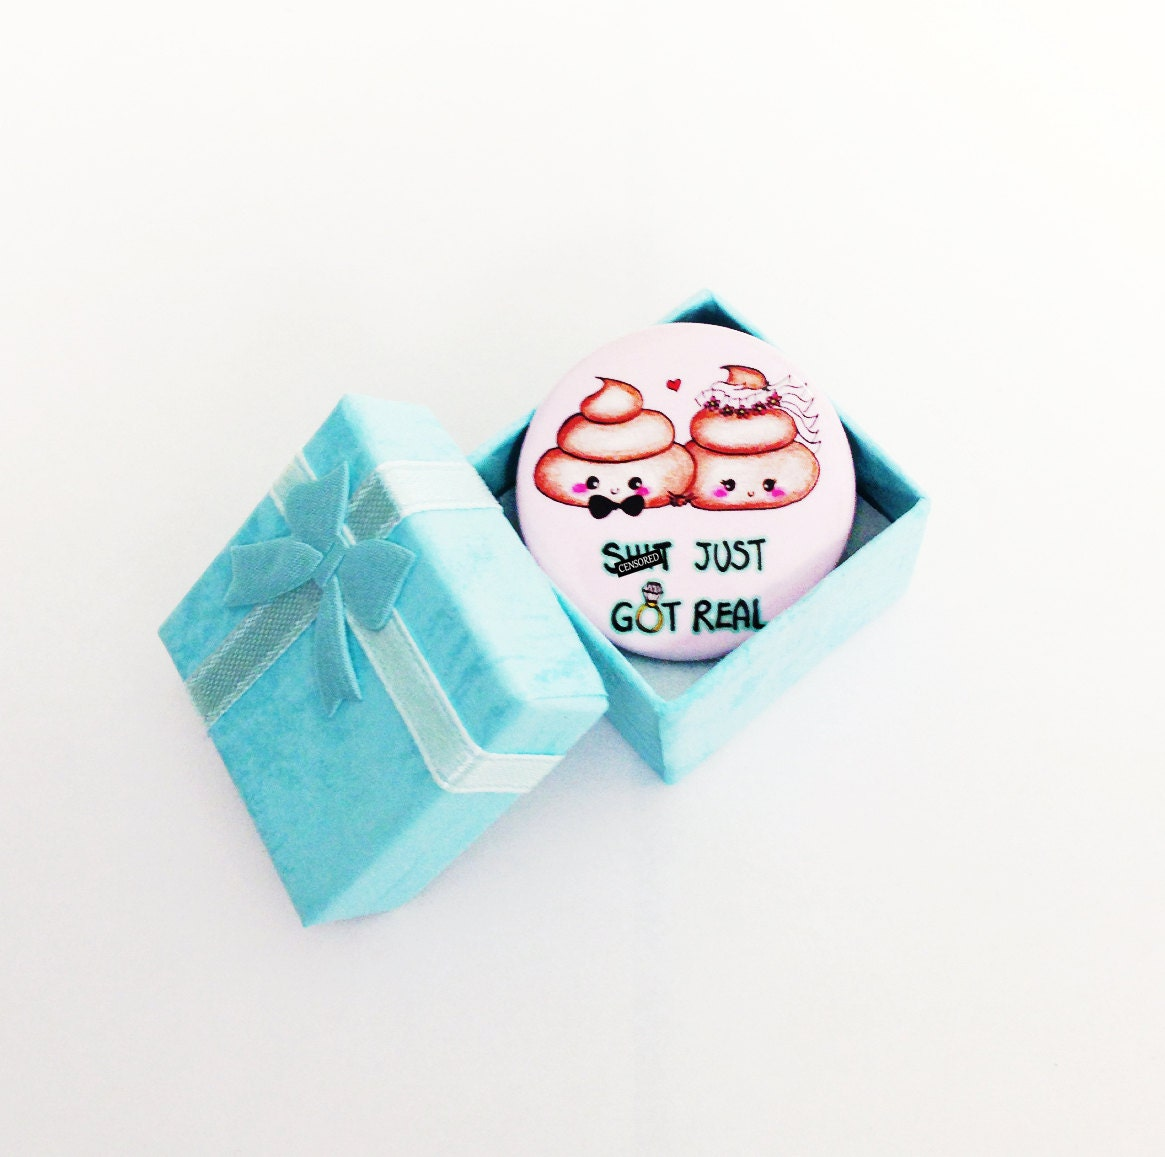 Cute Wedding Gift Ideas: Cute Wedding Gift Bridal Shower Gift Cute Poop Button